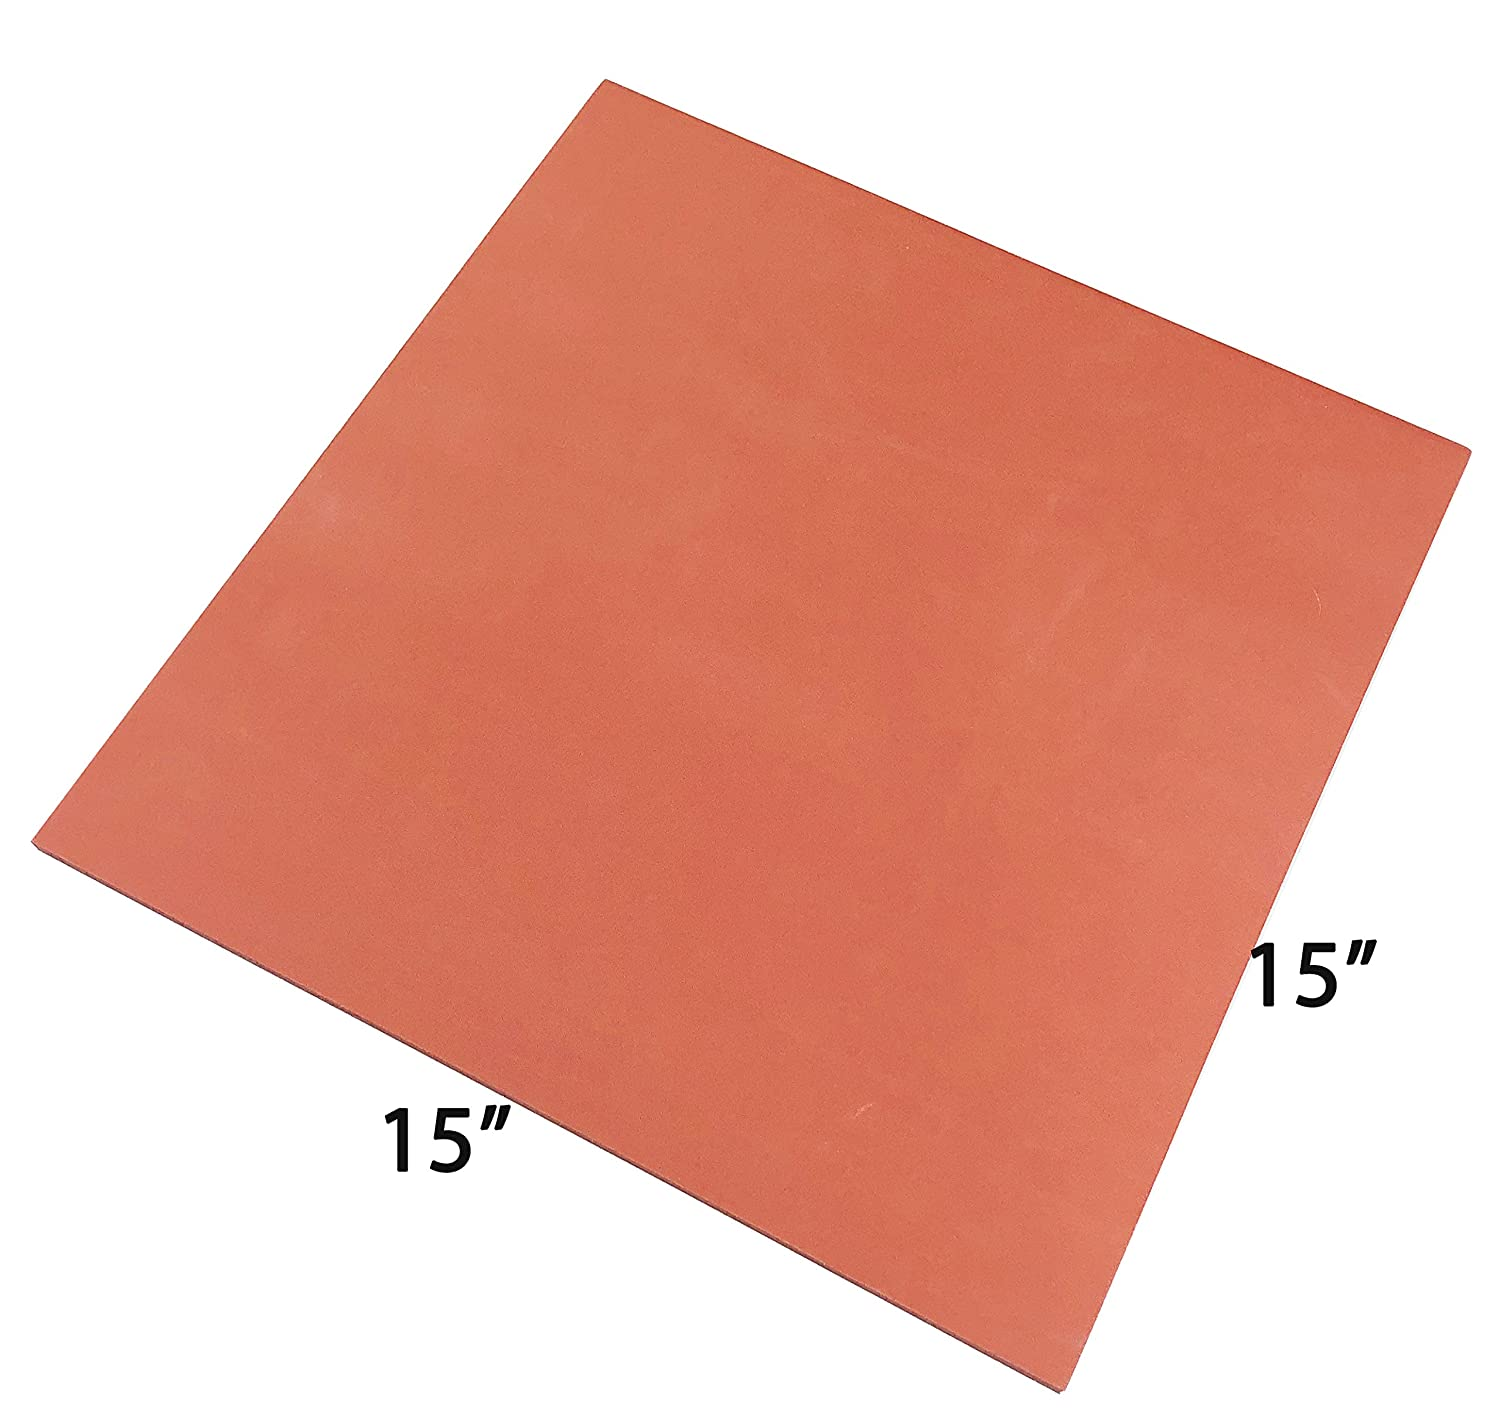 ePhotoInc Silicone Pad Flat Heat Press Replacement Heat Resistant Silicone Mat 15 x 15 Inches 15MatRed 4336975526